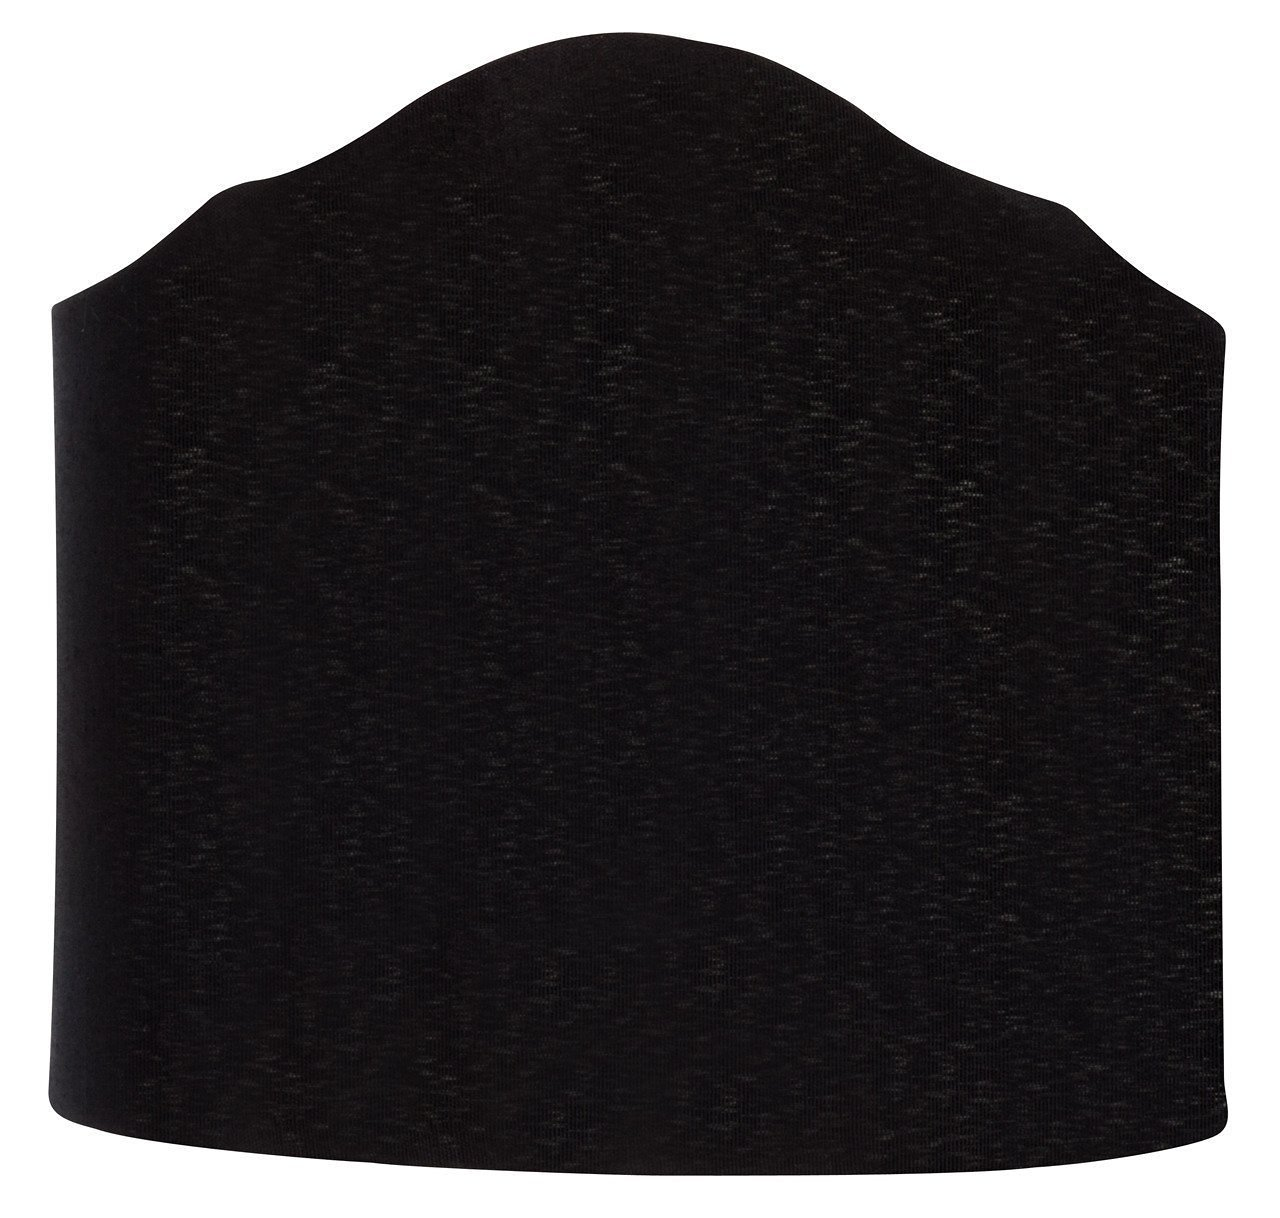 Upgradelights 6 Inch Wall Sconce Clip on Shield Lamp Shade with scalloped design (Black)